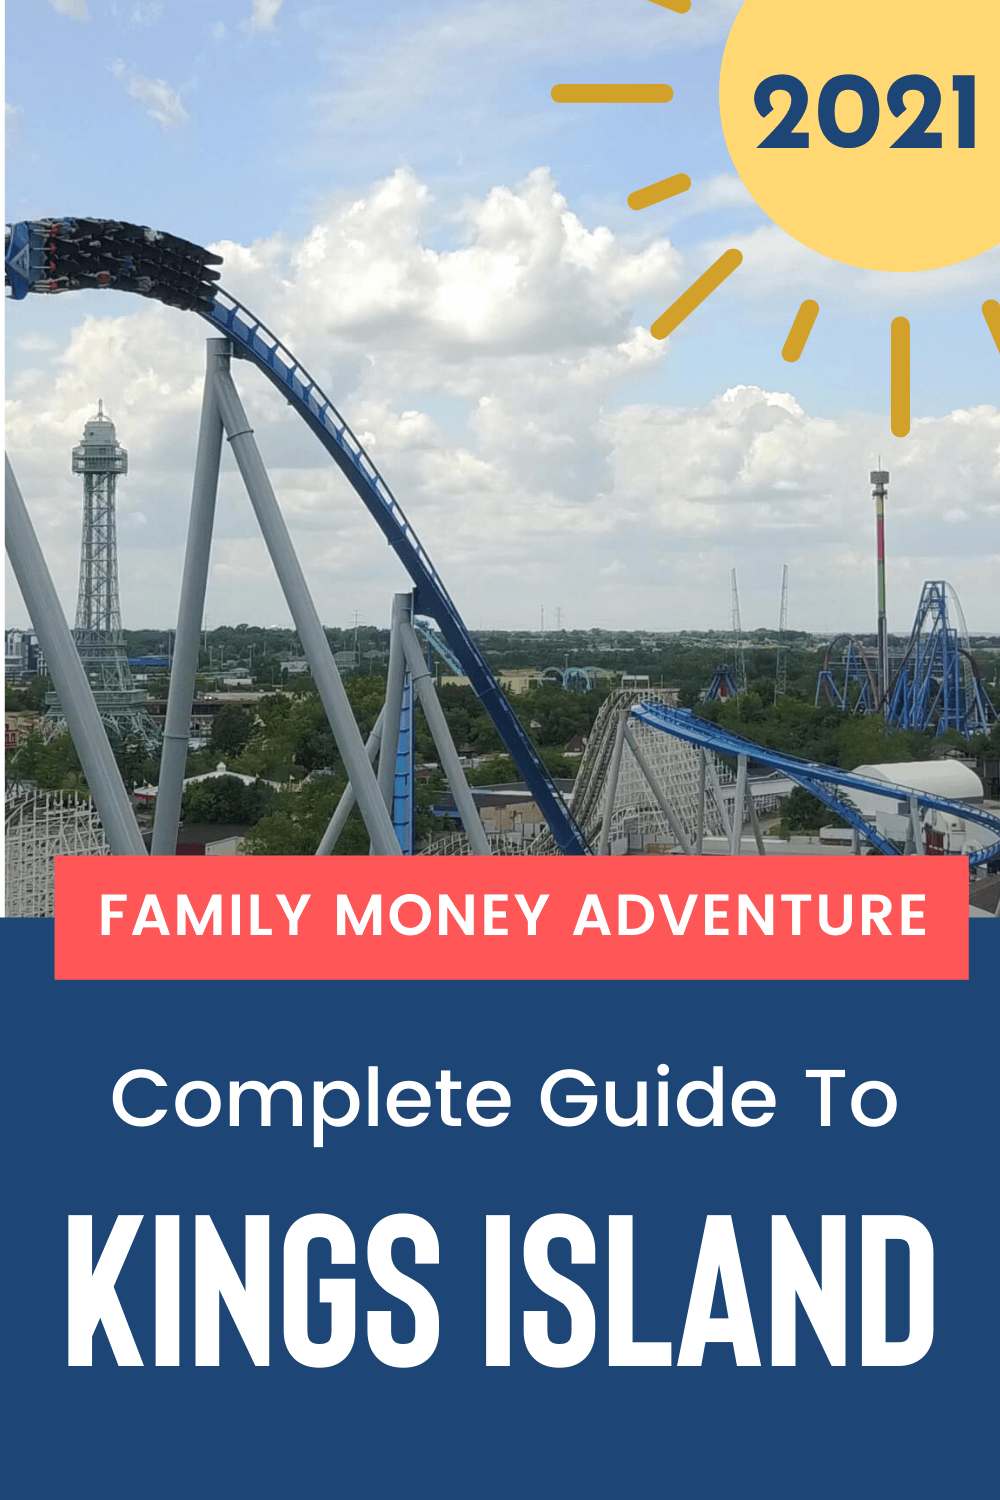 Visiting Kings Island in 2021: A Complete Guide